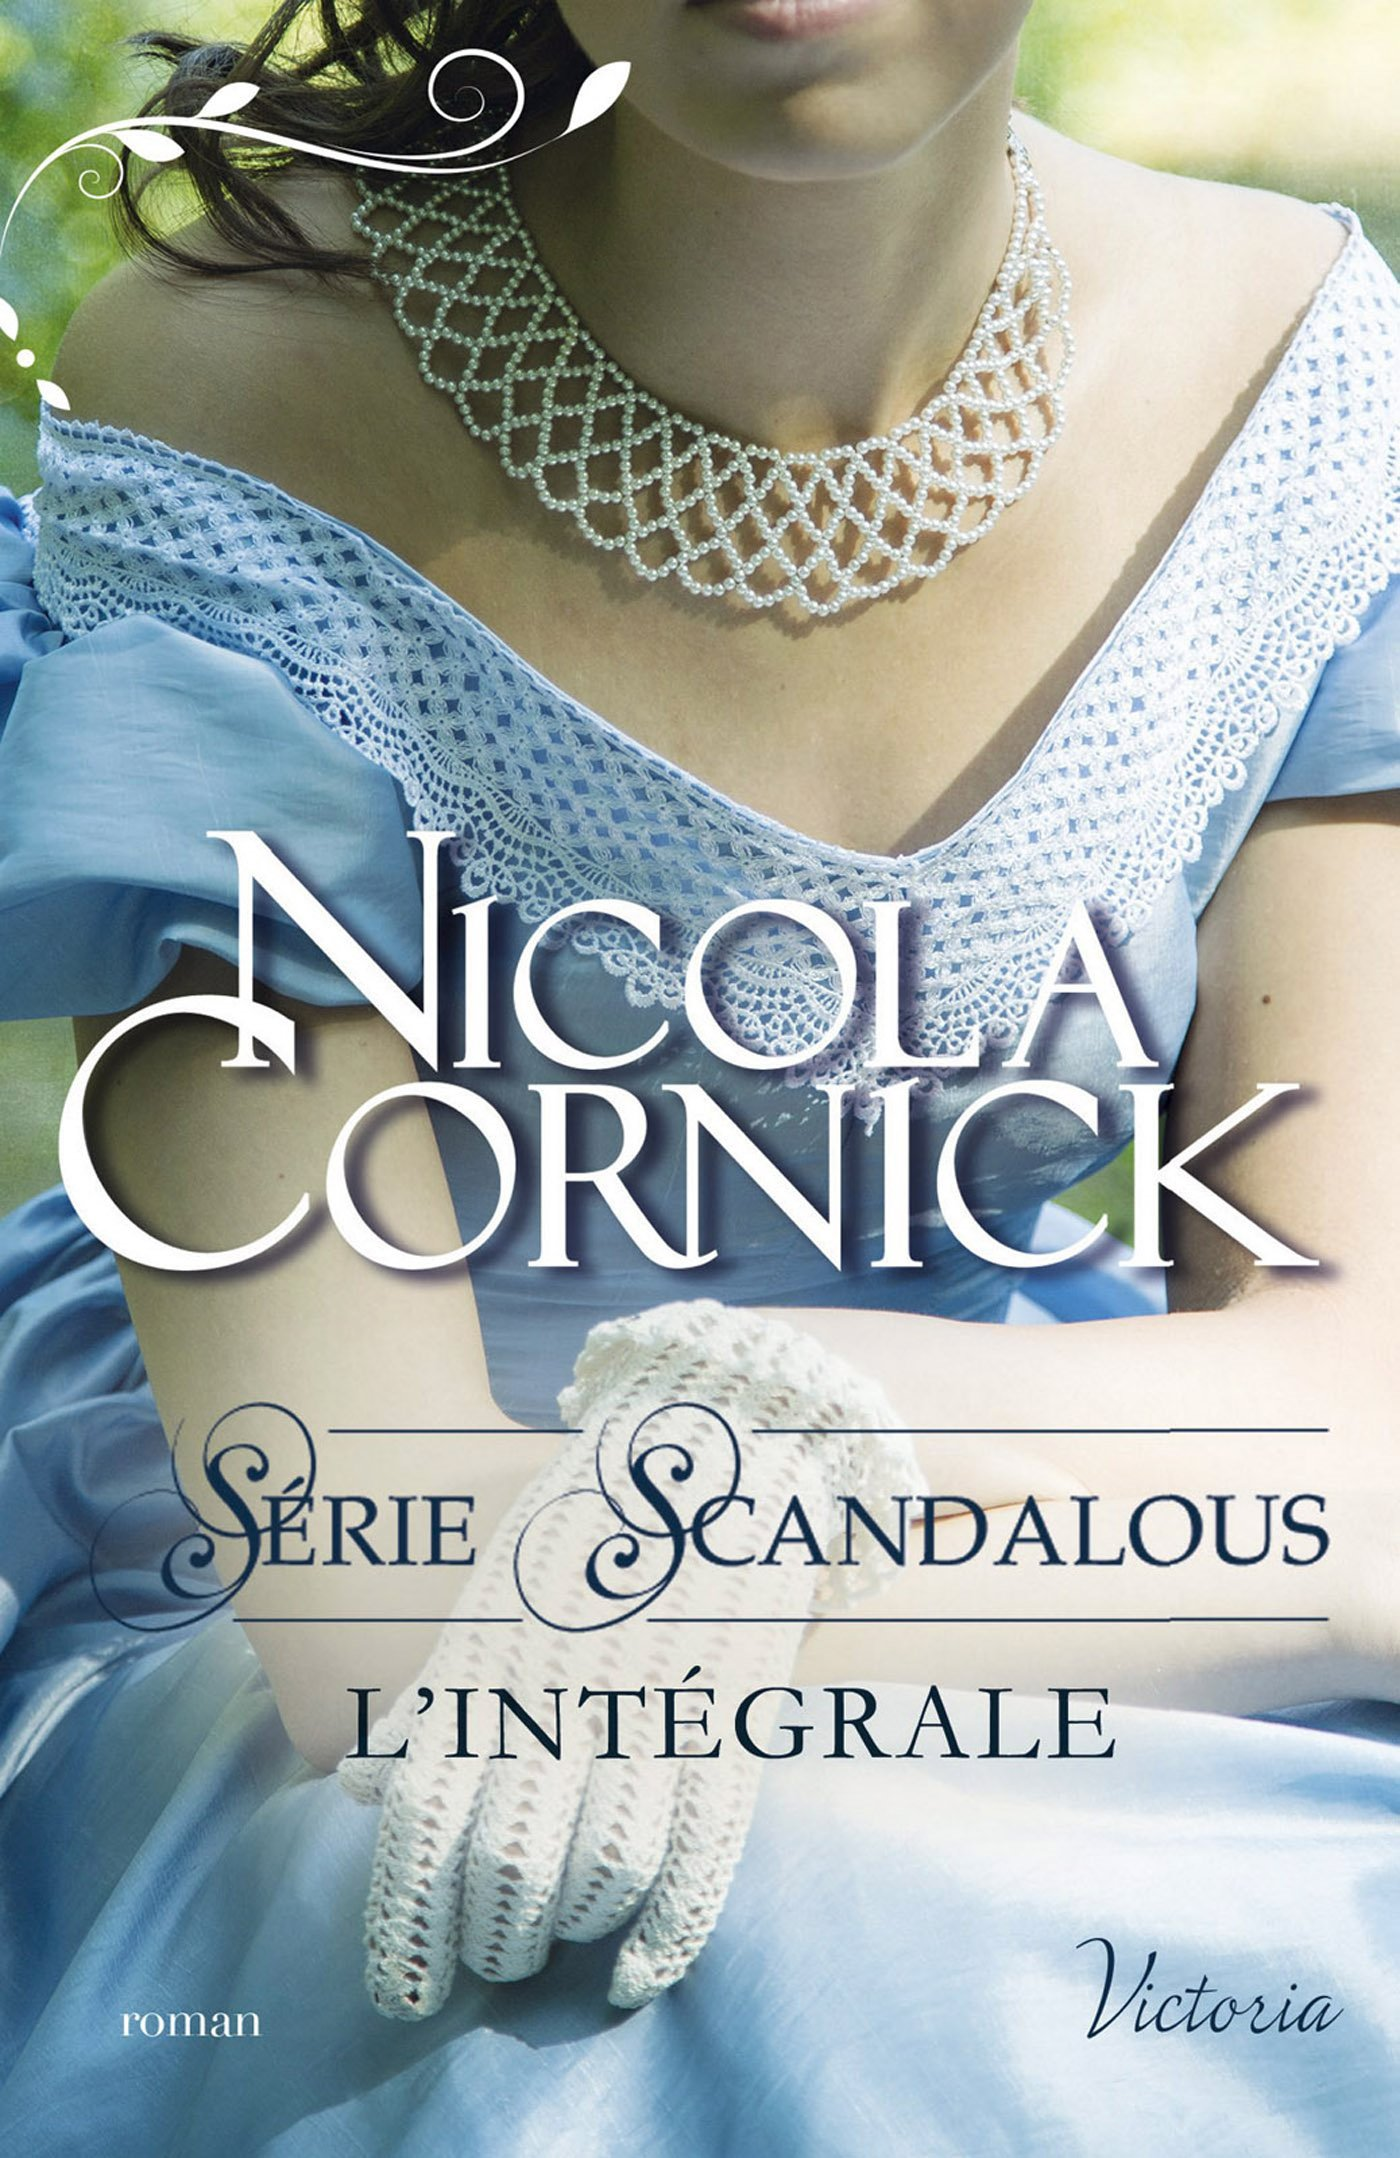 Couverture : NICOLA CORNICK, Audacieuse marquise, Harlequin